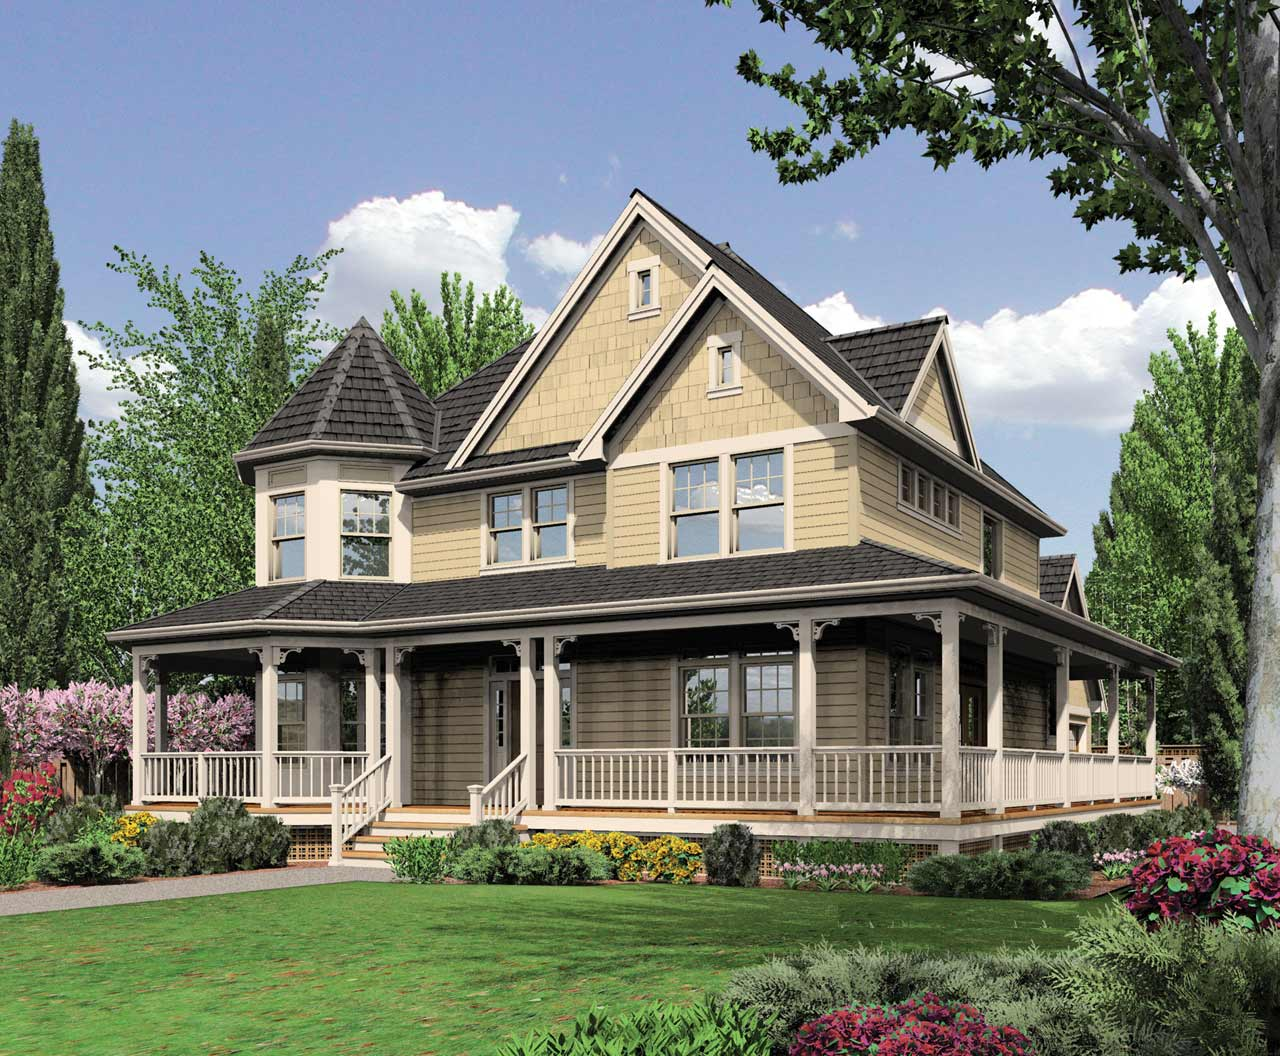 Victorian Style House Plans Plan: 74-321